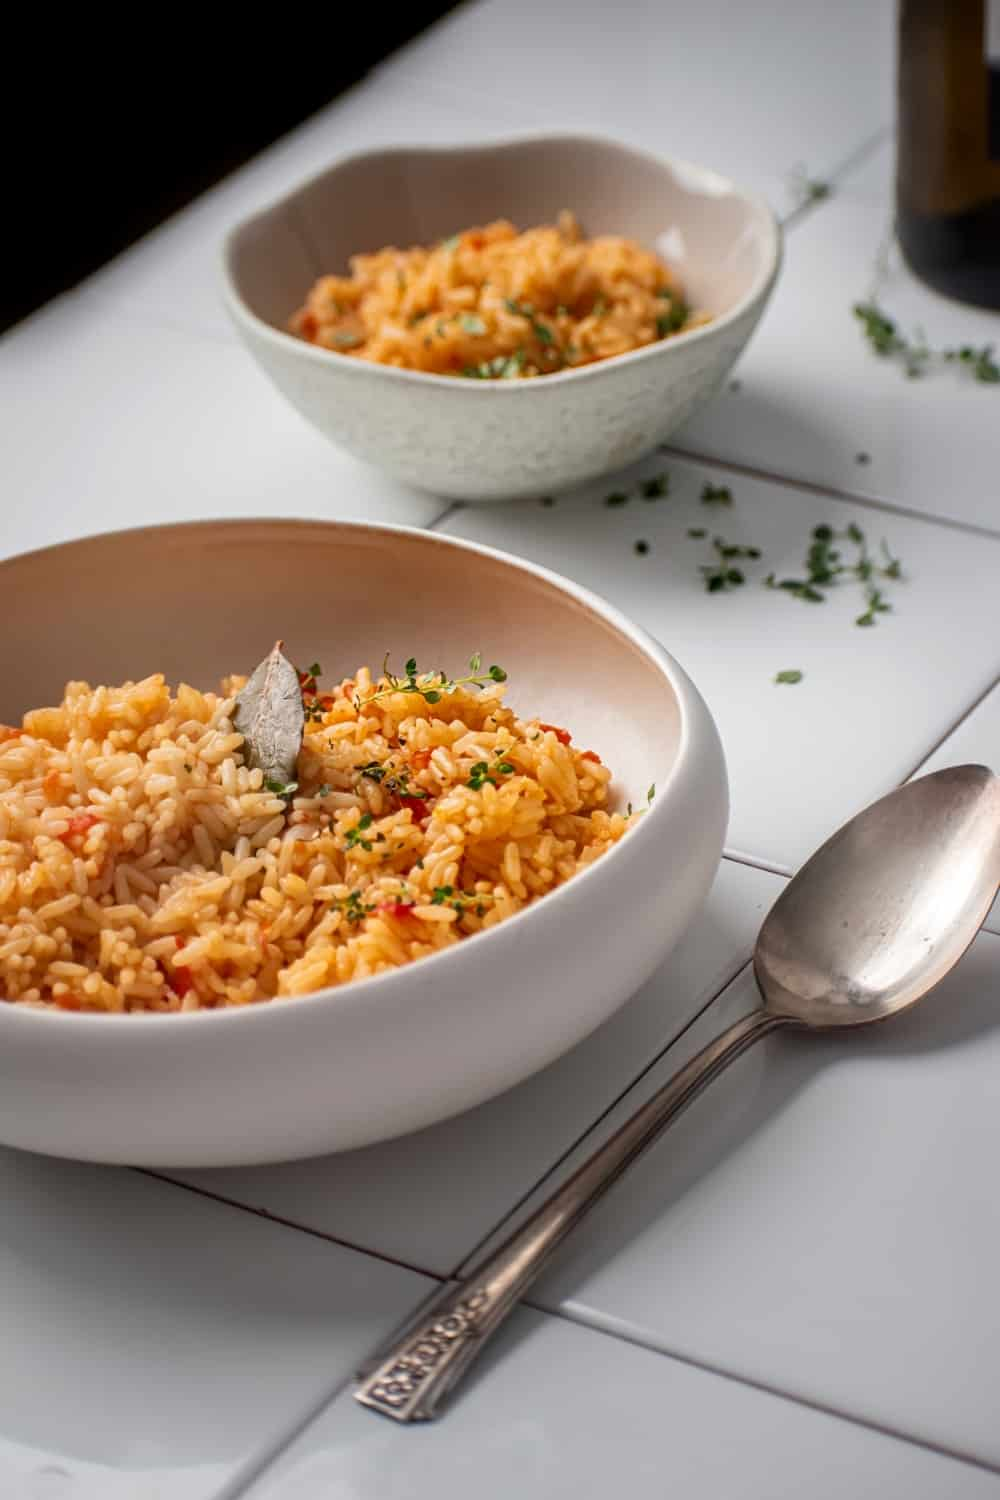 Part of a white bowl filled with Spanish rice on white tile. There is a Silver spoon next to the bowl in behind the ball is a smaller white bowl filled with Spanish rice.